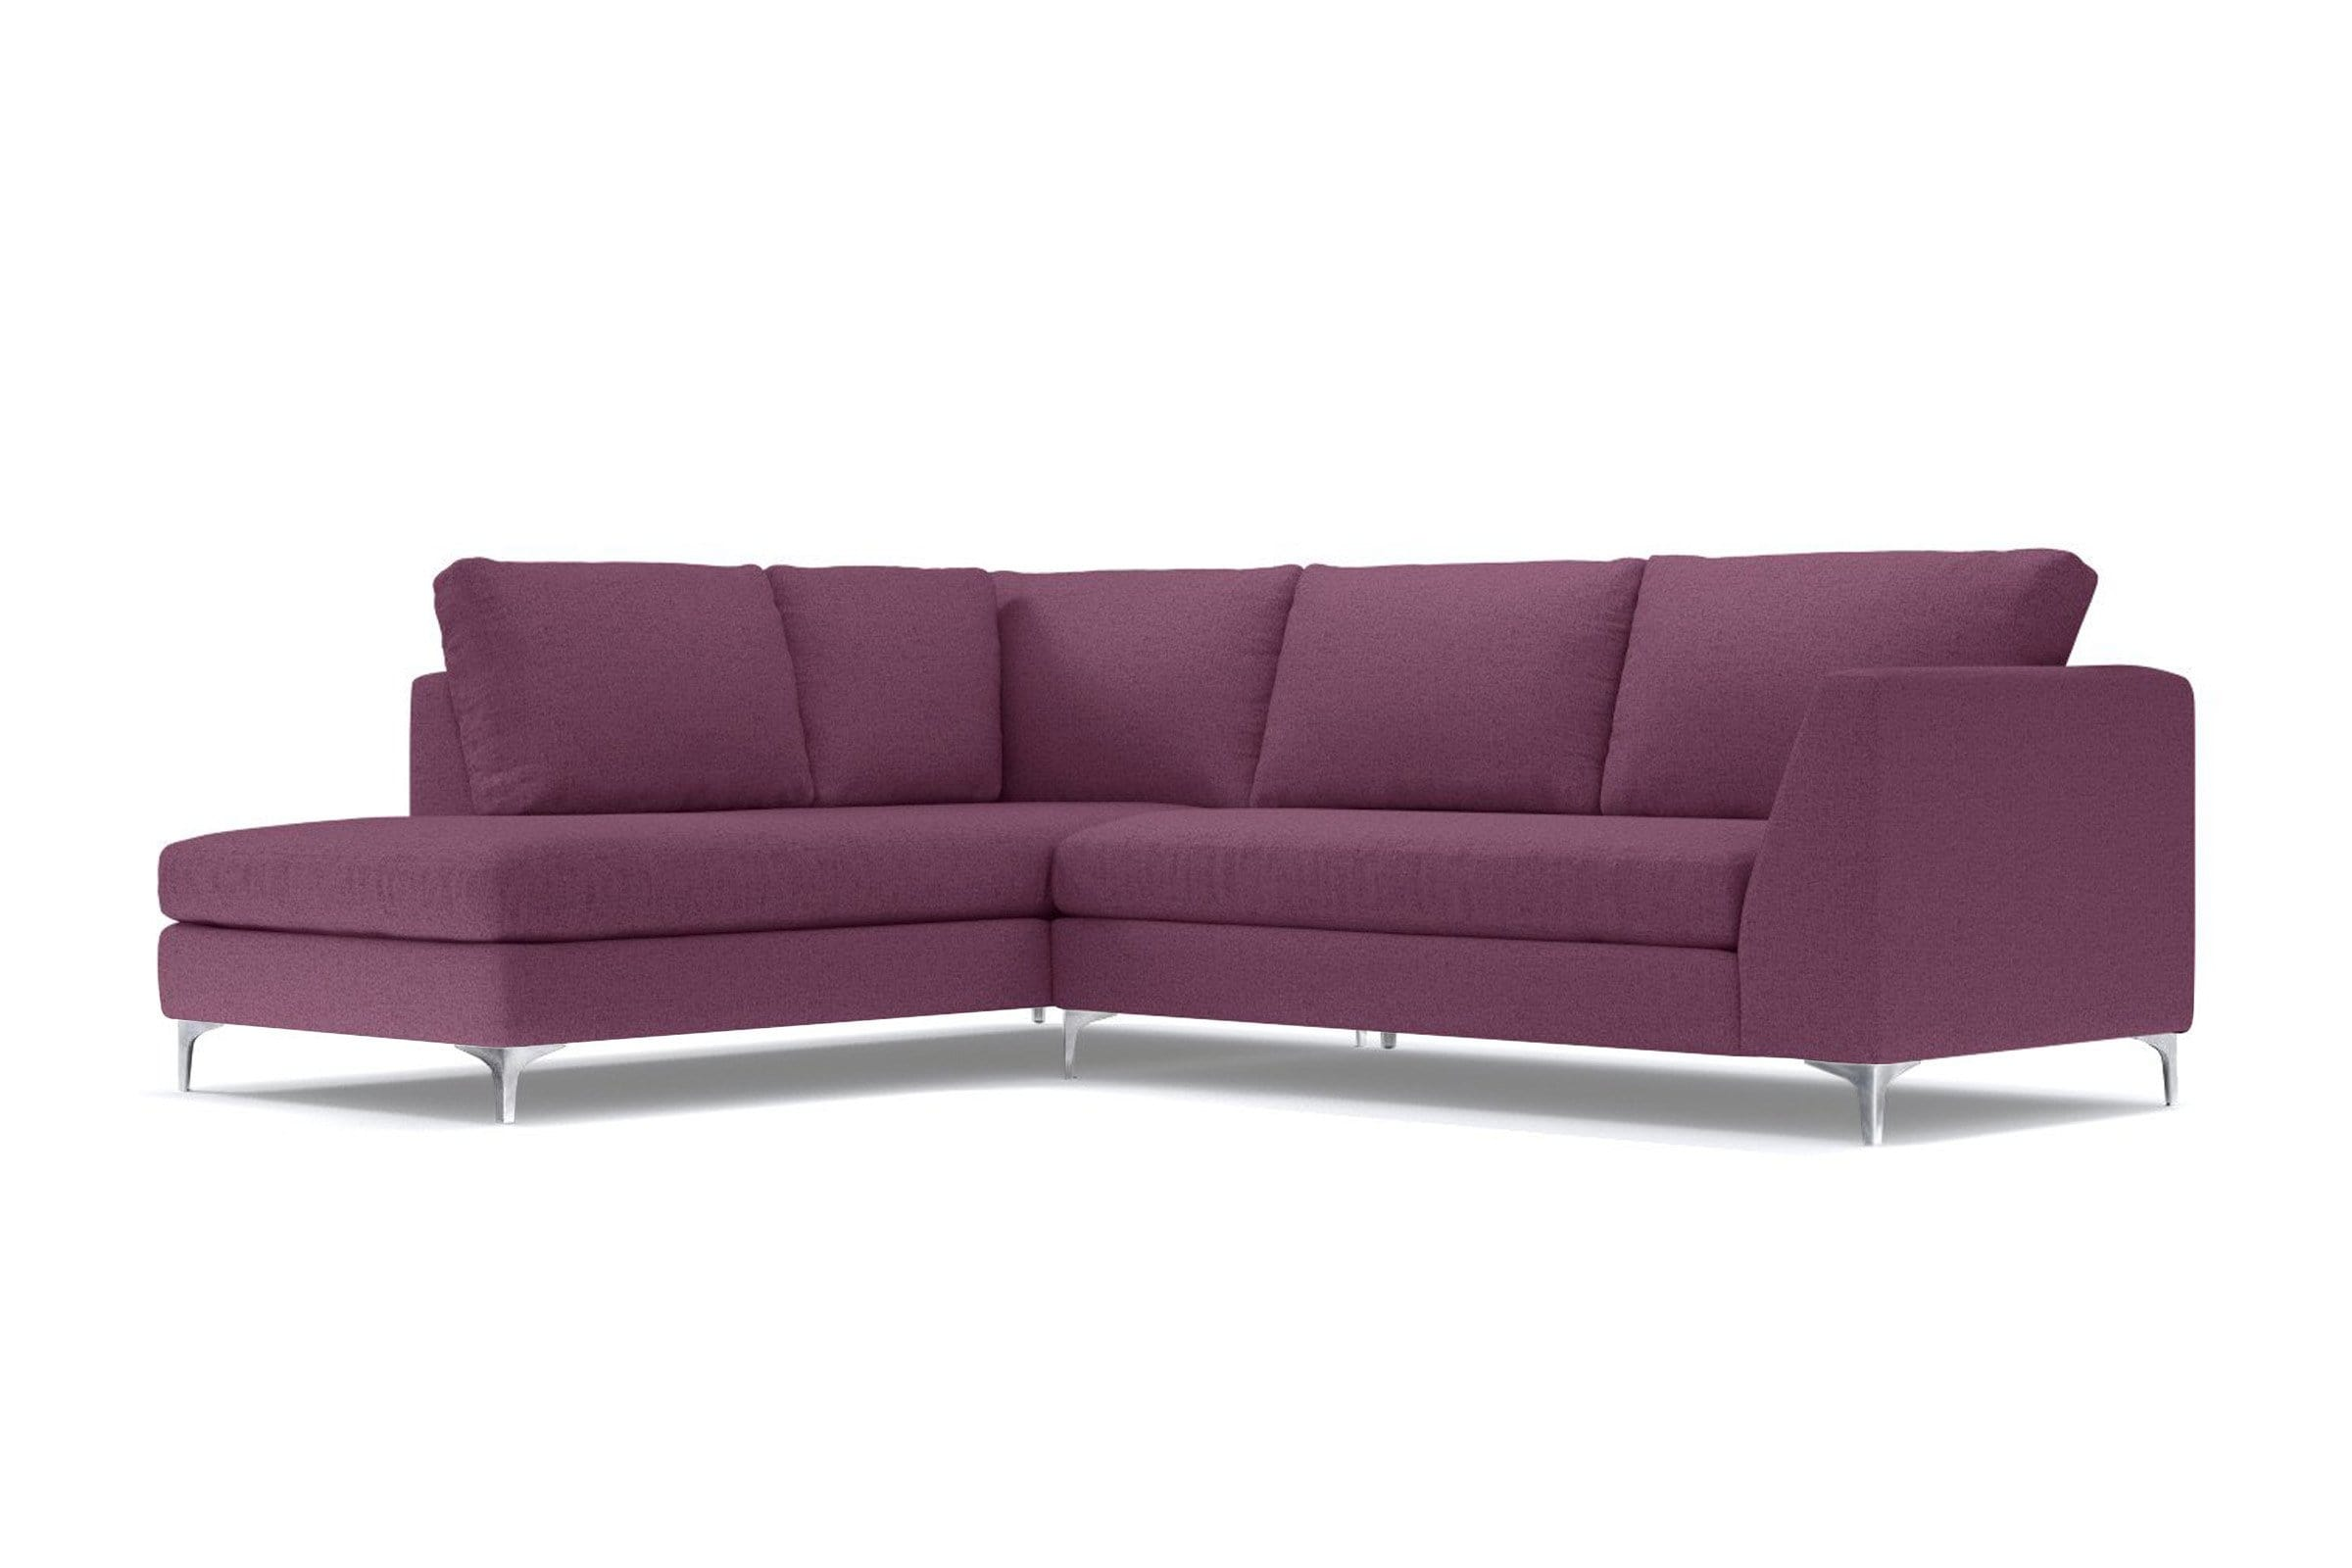 Mulholland 2pc Sectional Sofa - Purple - Modern Sectional Sofa Made in USA - Sold by Apt2B